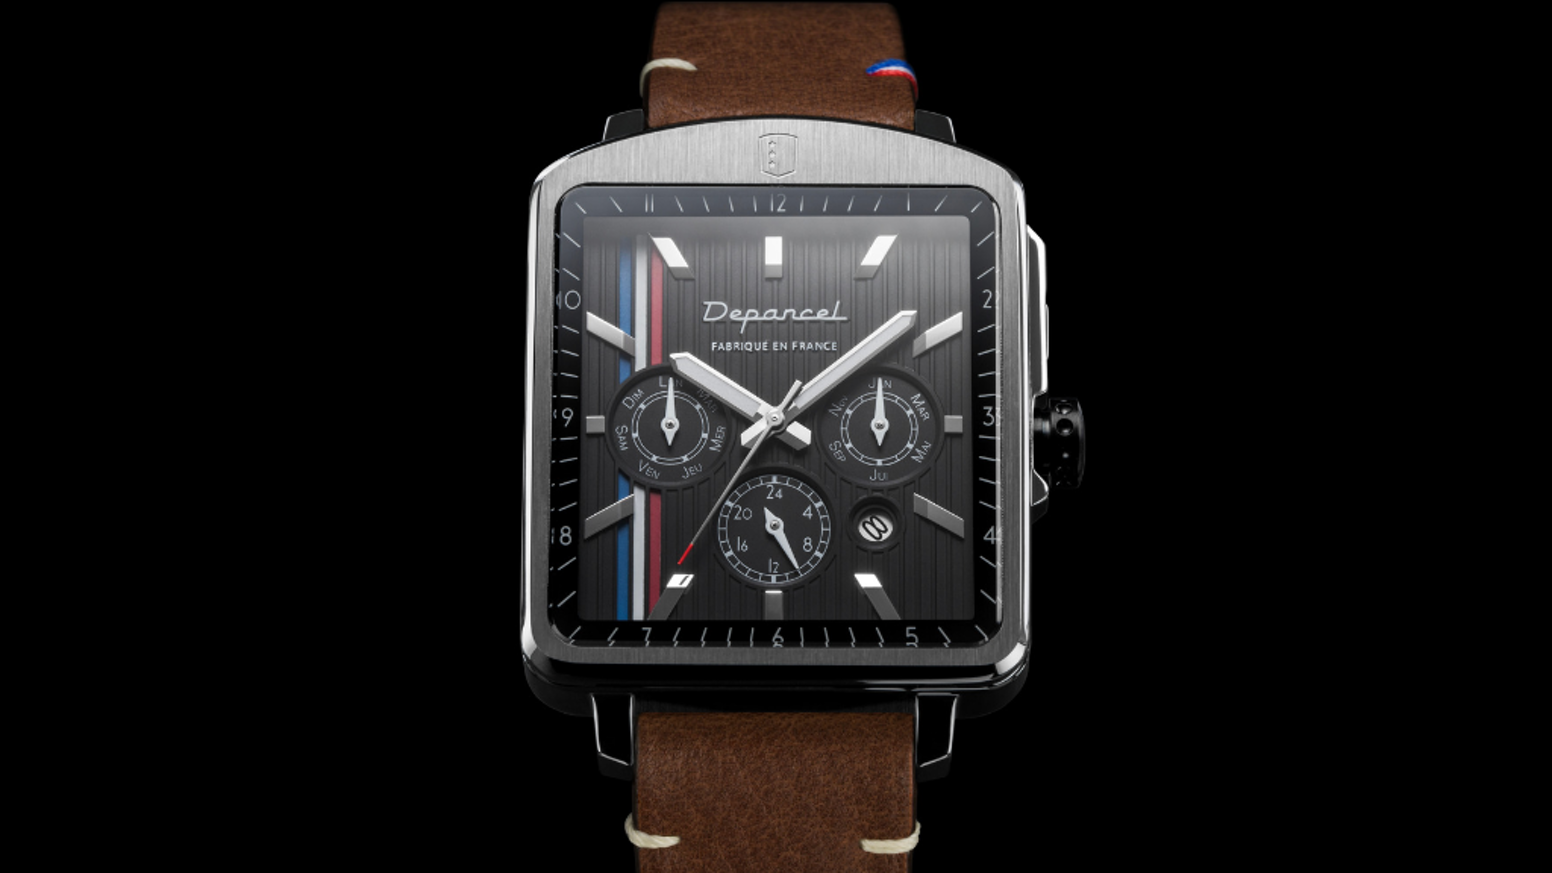 Co-created with over 7'500 fine watchmaking enthusiasts in March: [Re]Naissance is  the perfect automatic square-shaped watch you made!